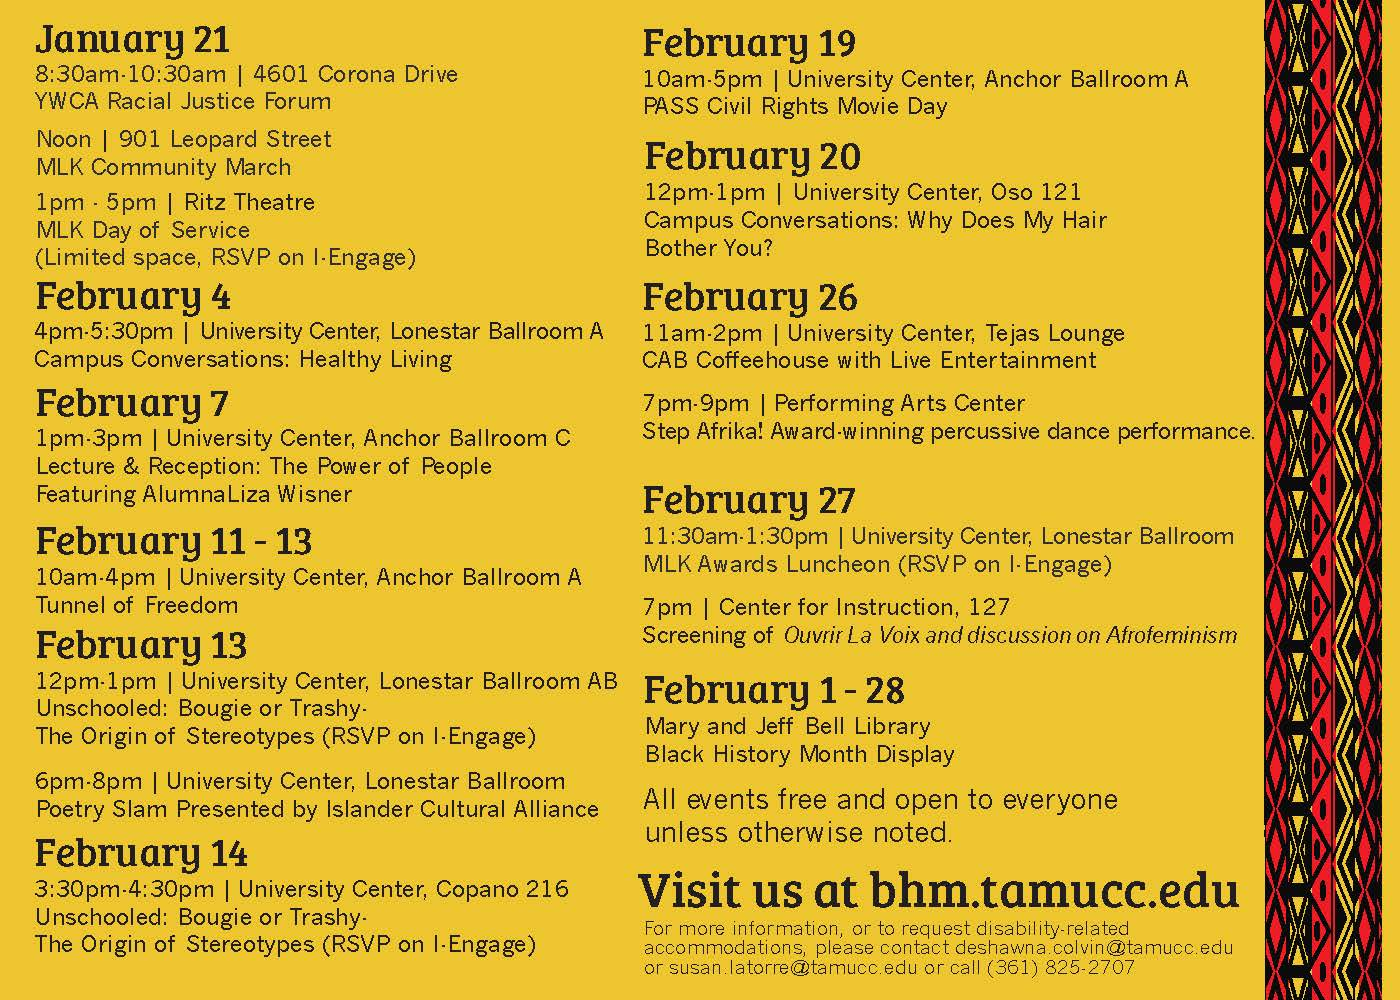 Black History Month Calendar with Events